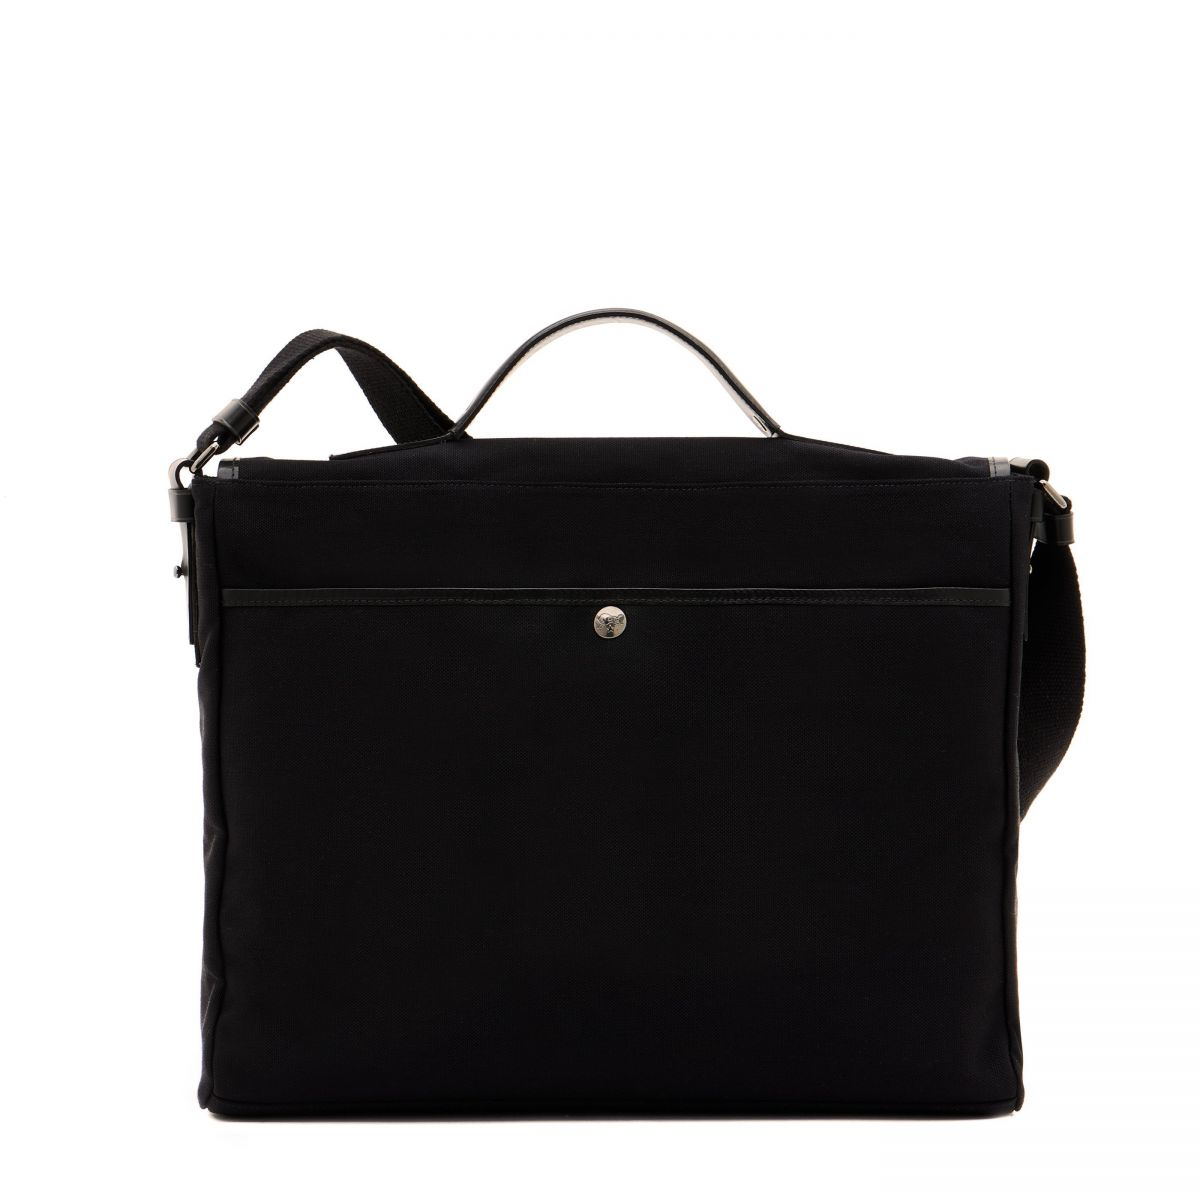 Briefcase  in Technical Fabric BBC043 color Black/Black | Details